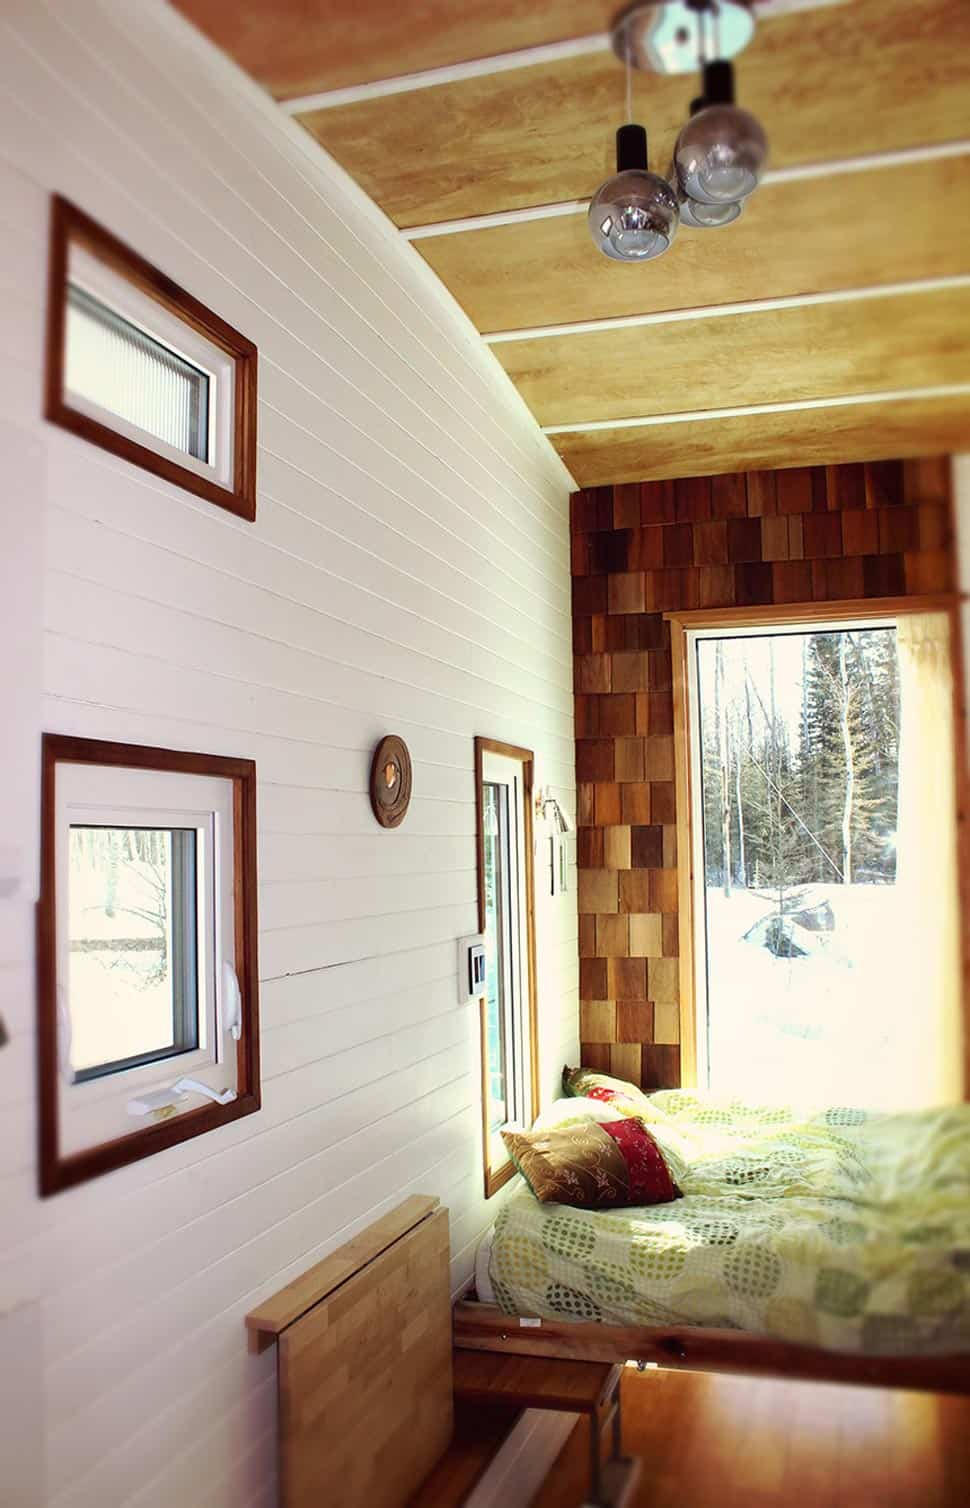 View In Gallery Tiny House Design For Cold Weather 7